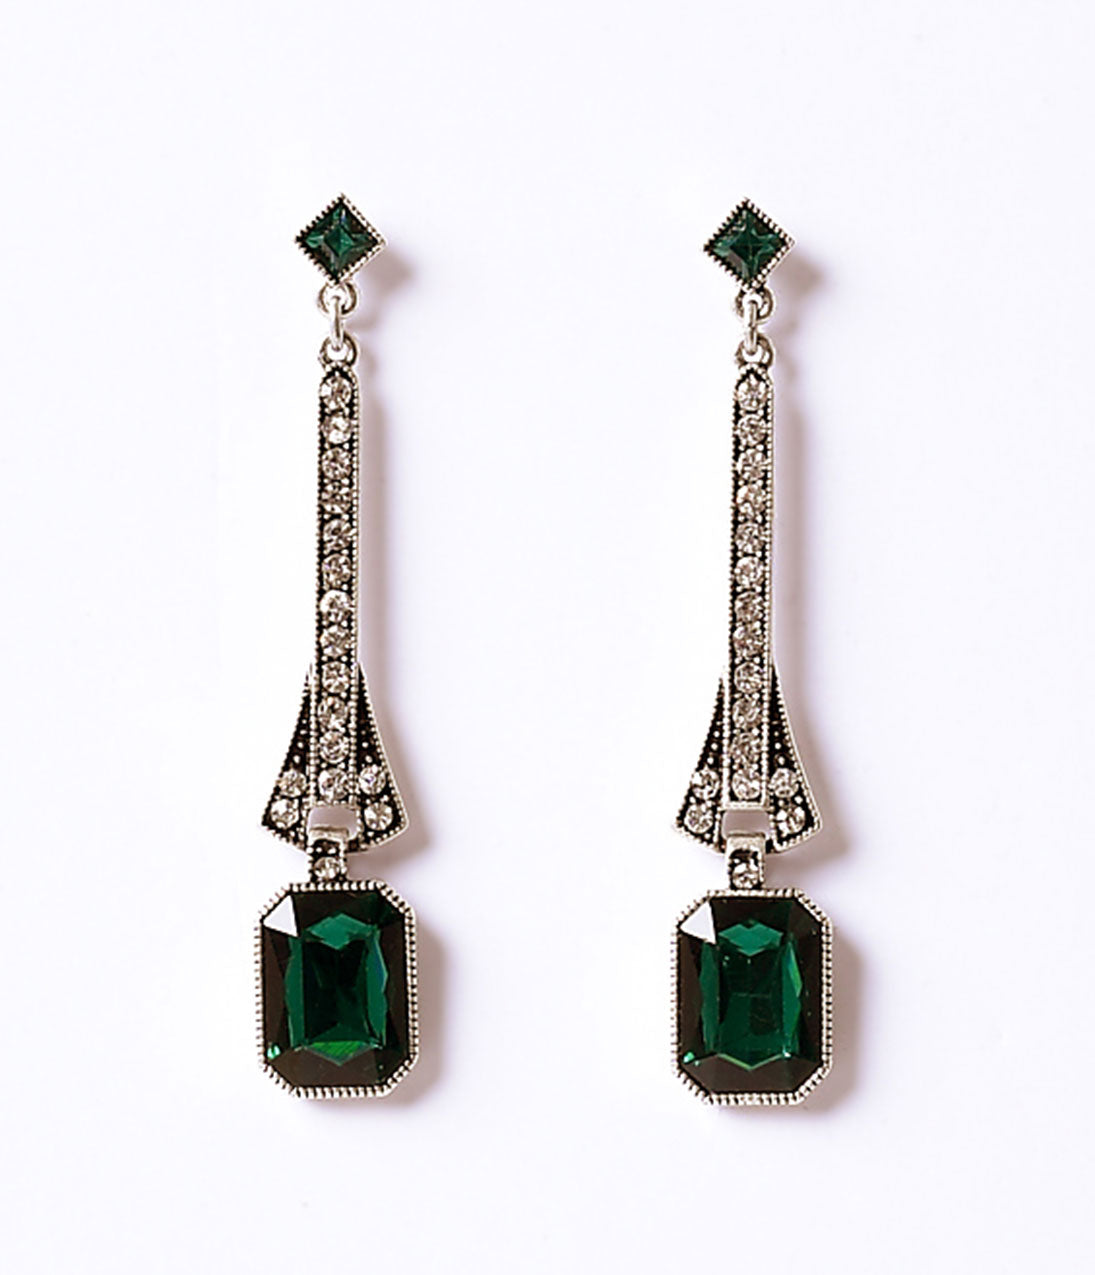 Vintage Style Jewelry, Retro Jewelry Deco Style Emerald  Silver Crystal Drop Post Earrings $28.00 AT vintagedancer.com